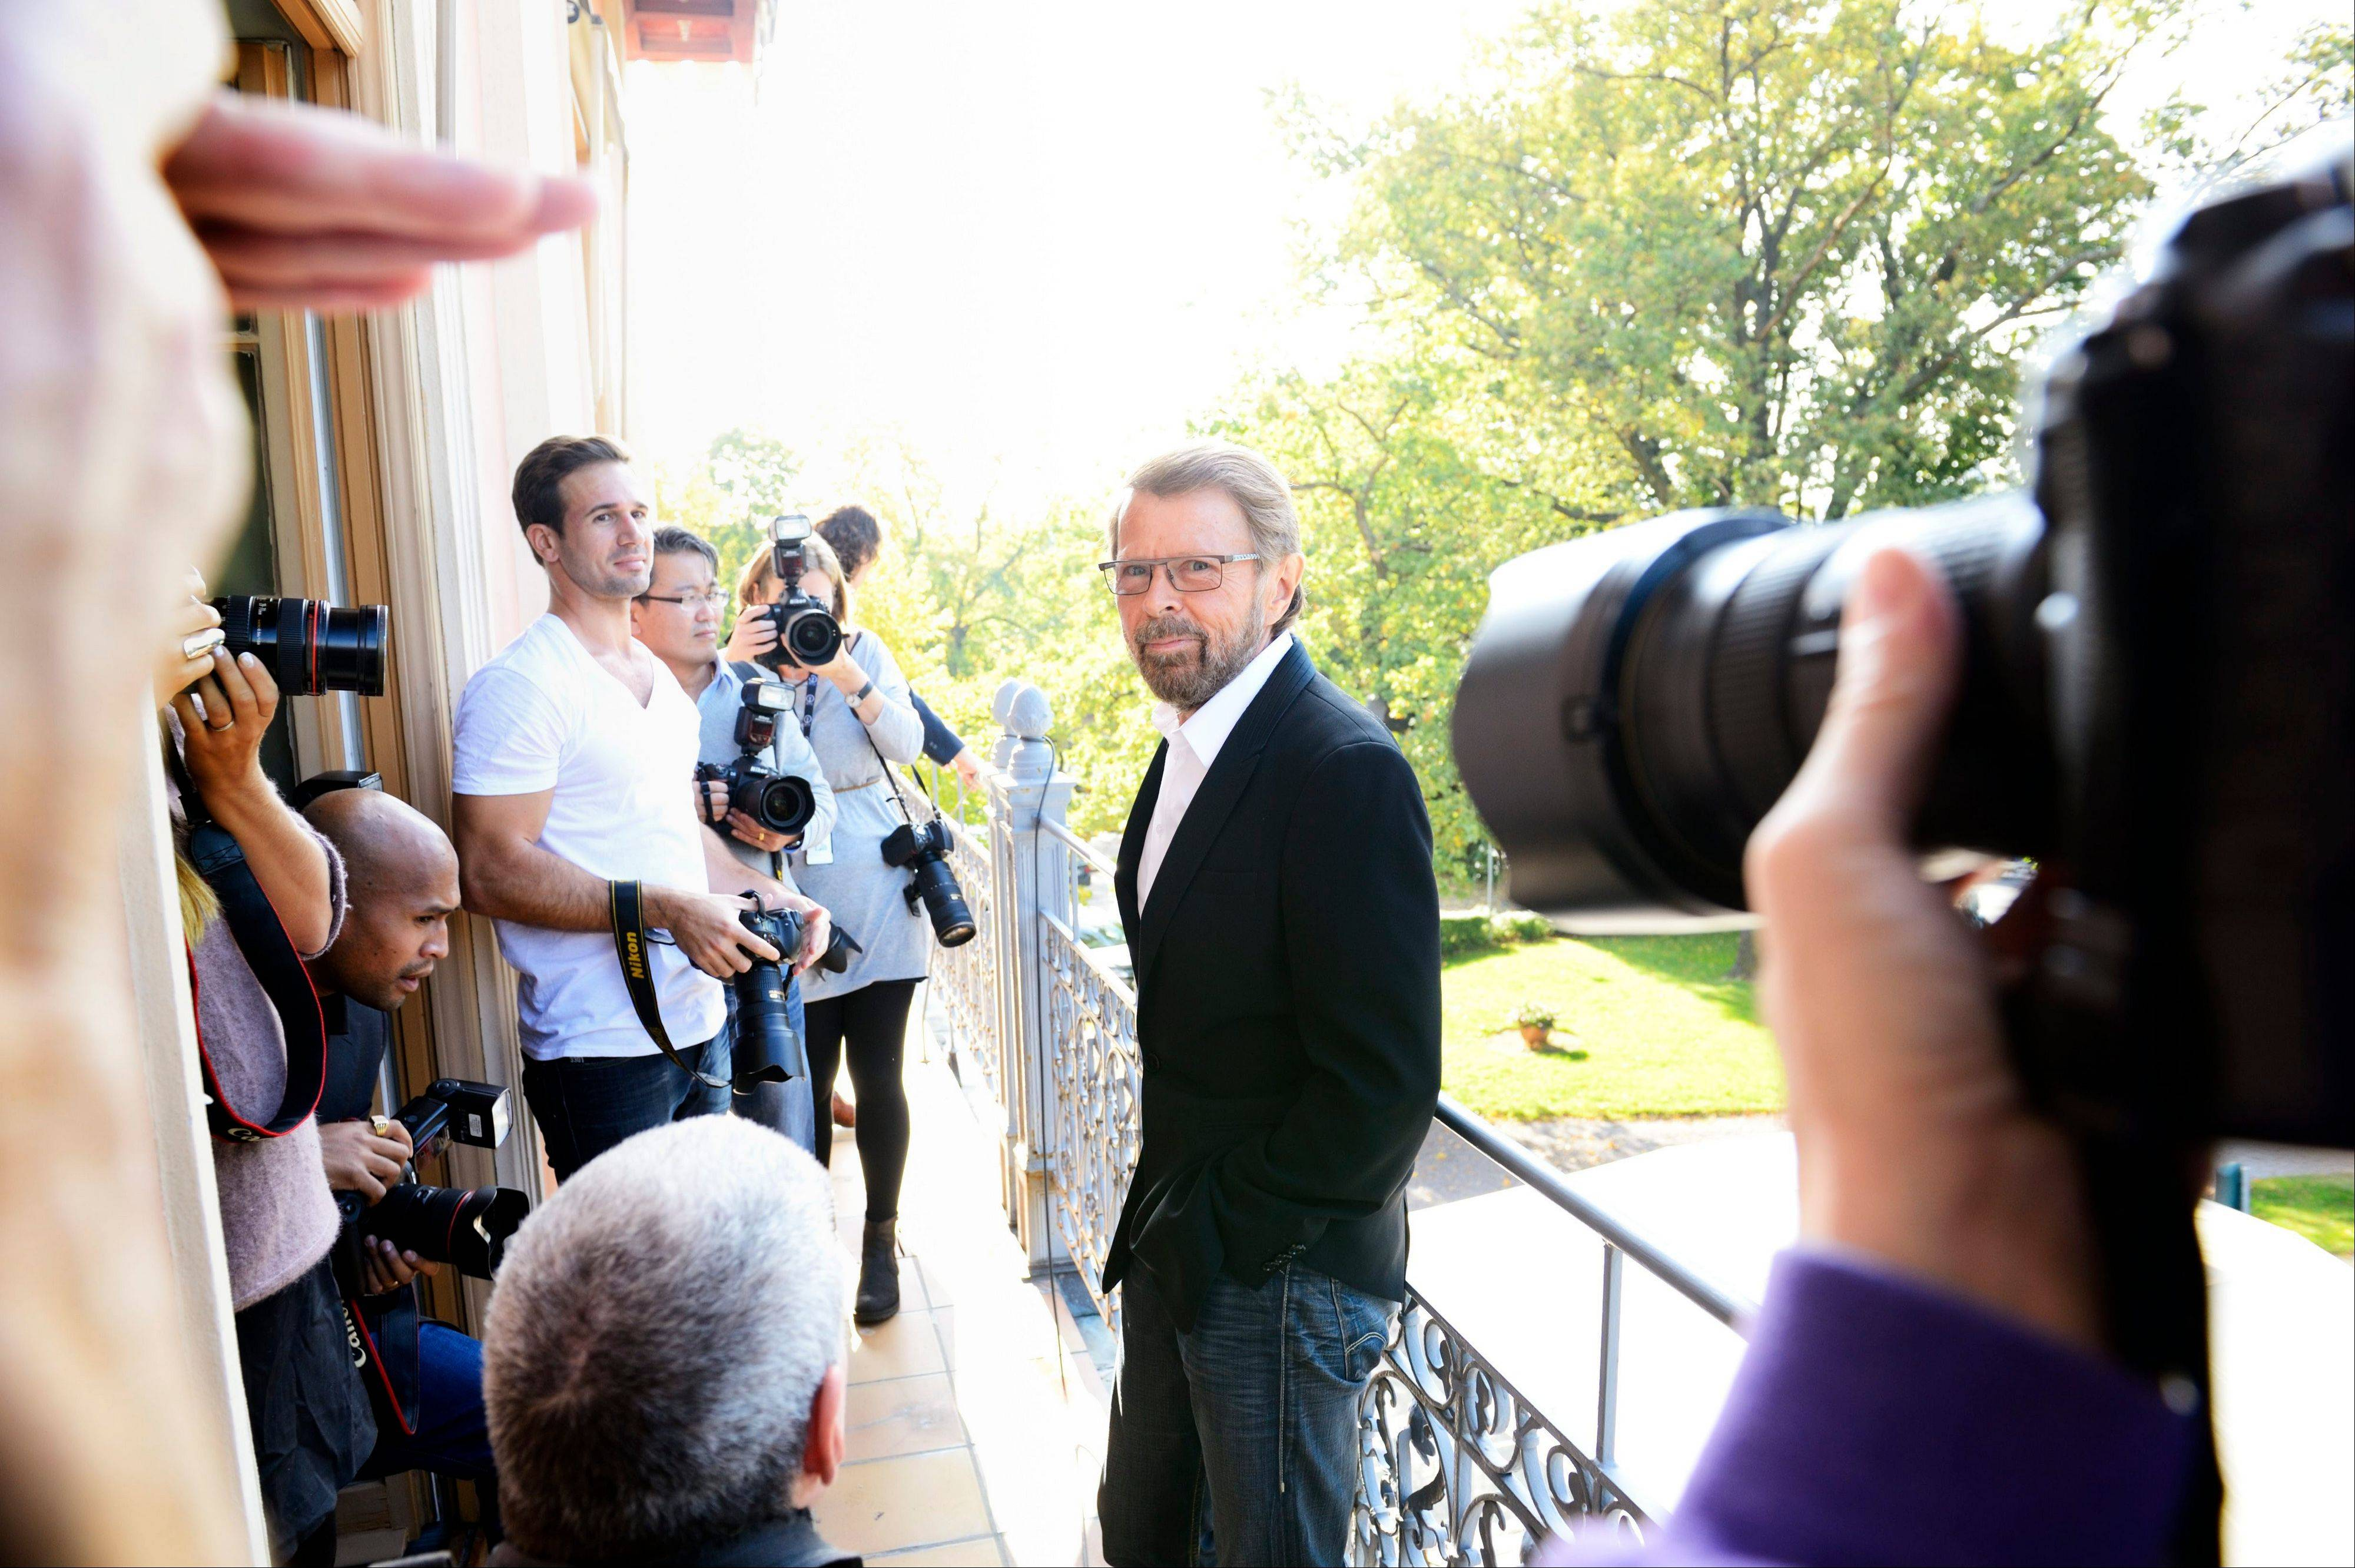 Former ABBA band member Bjoern Ulvaeus, centre, arrives for a news conference, at the ABBA museum construction site in Stockholm., Sweden, Wednesday Oct. 3, 2012. A traveling ABBA exhibit is to get a permanent home in a new museum dedicated mostly to the Swedish quartet that has sold nearly 400 million records since its heyday in the 1970s. Former band member Bjoern Ulvaeus said Wednesday that �ABBA The Museum� will be part of a Swedish music hall of fame to be inaugurated in Stockholm next spring.